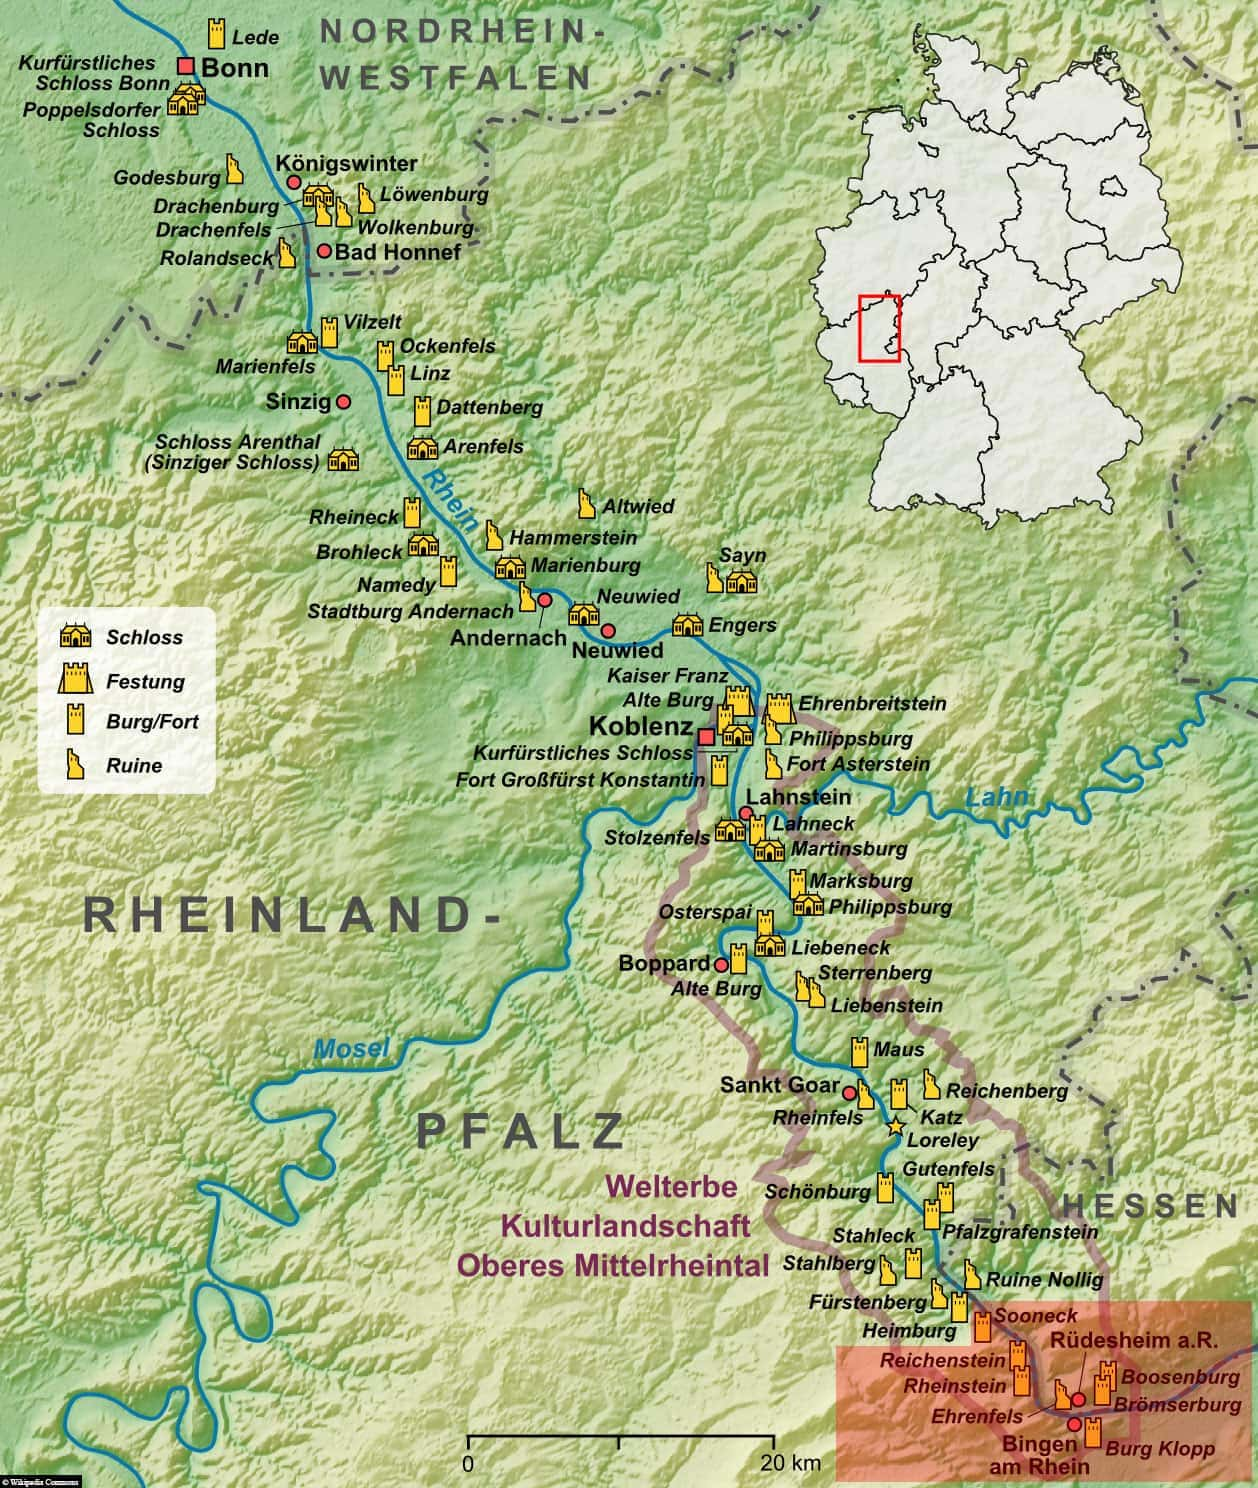 UNESCO, Cultural Landscape Upper Middle Rhine Valley, Map, Rhine, Germany, Travel Report